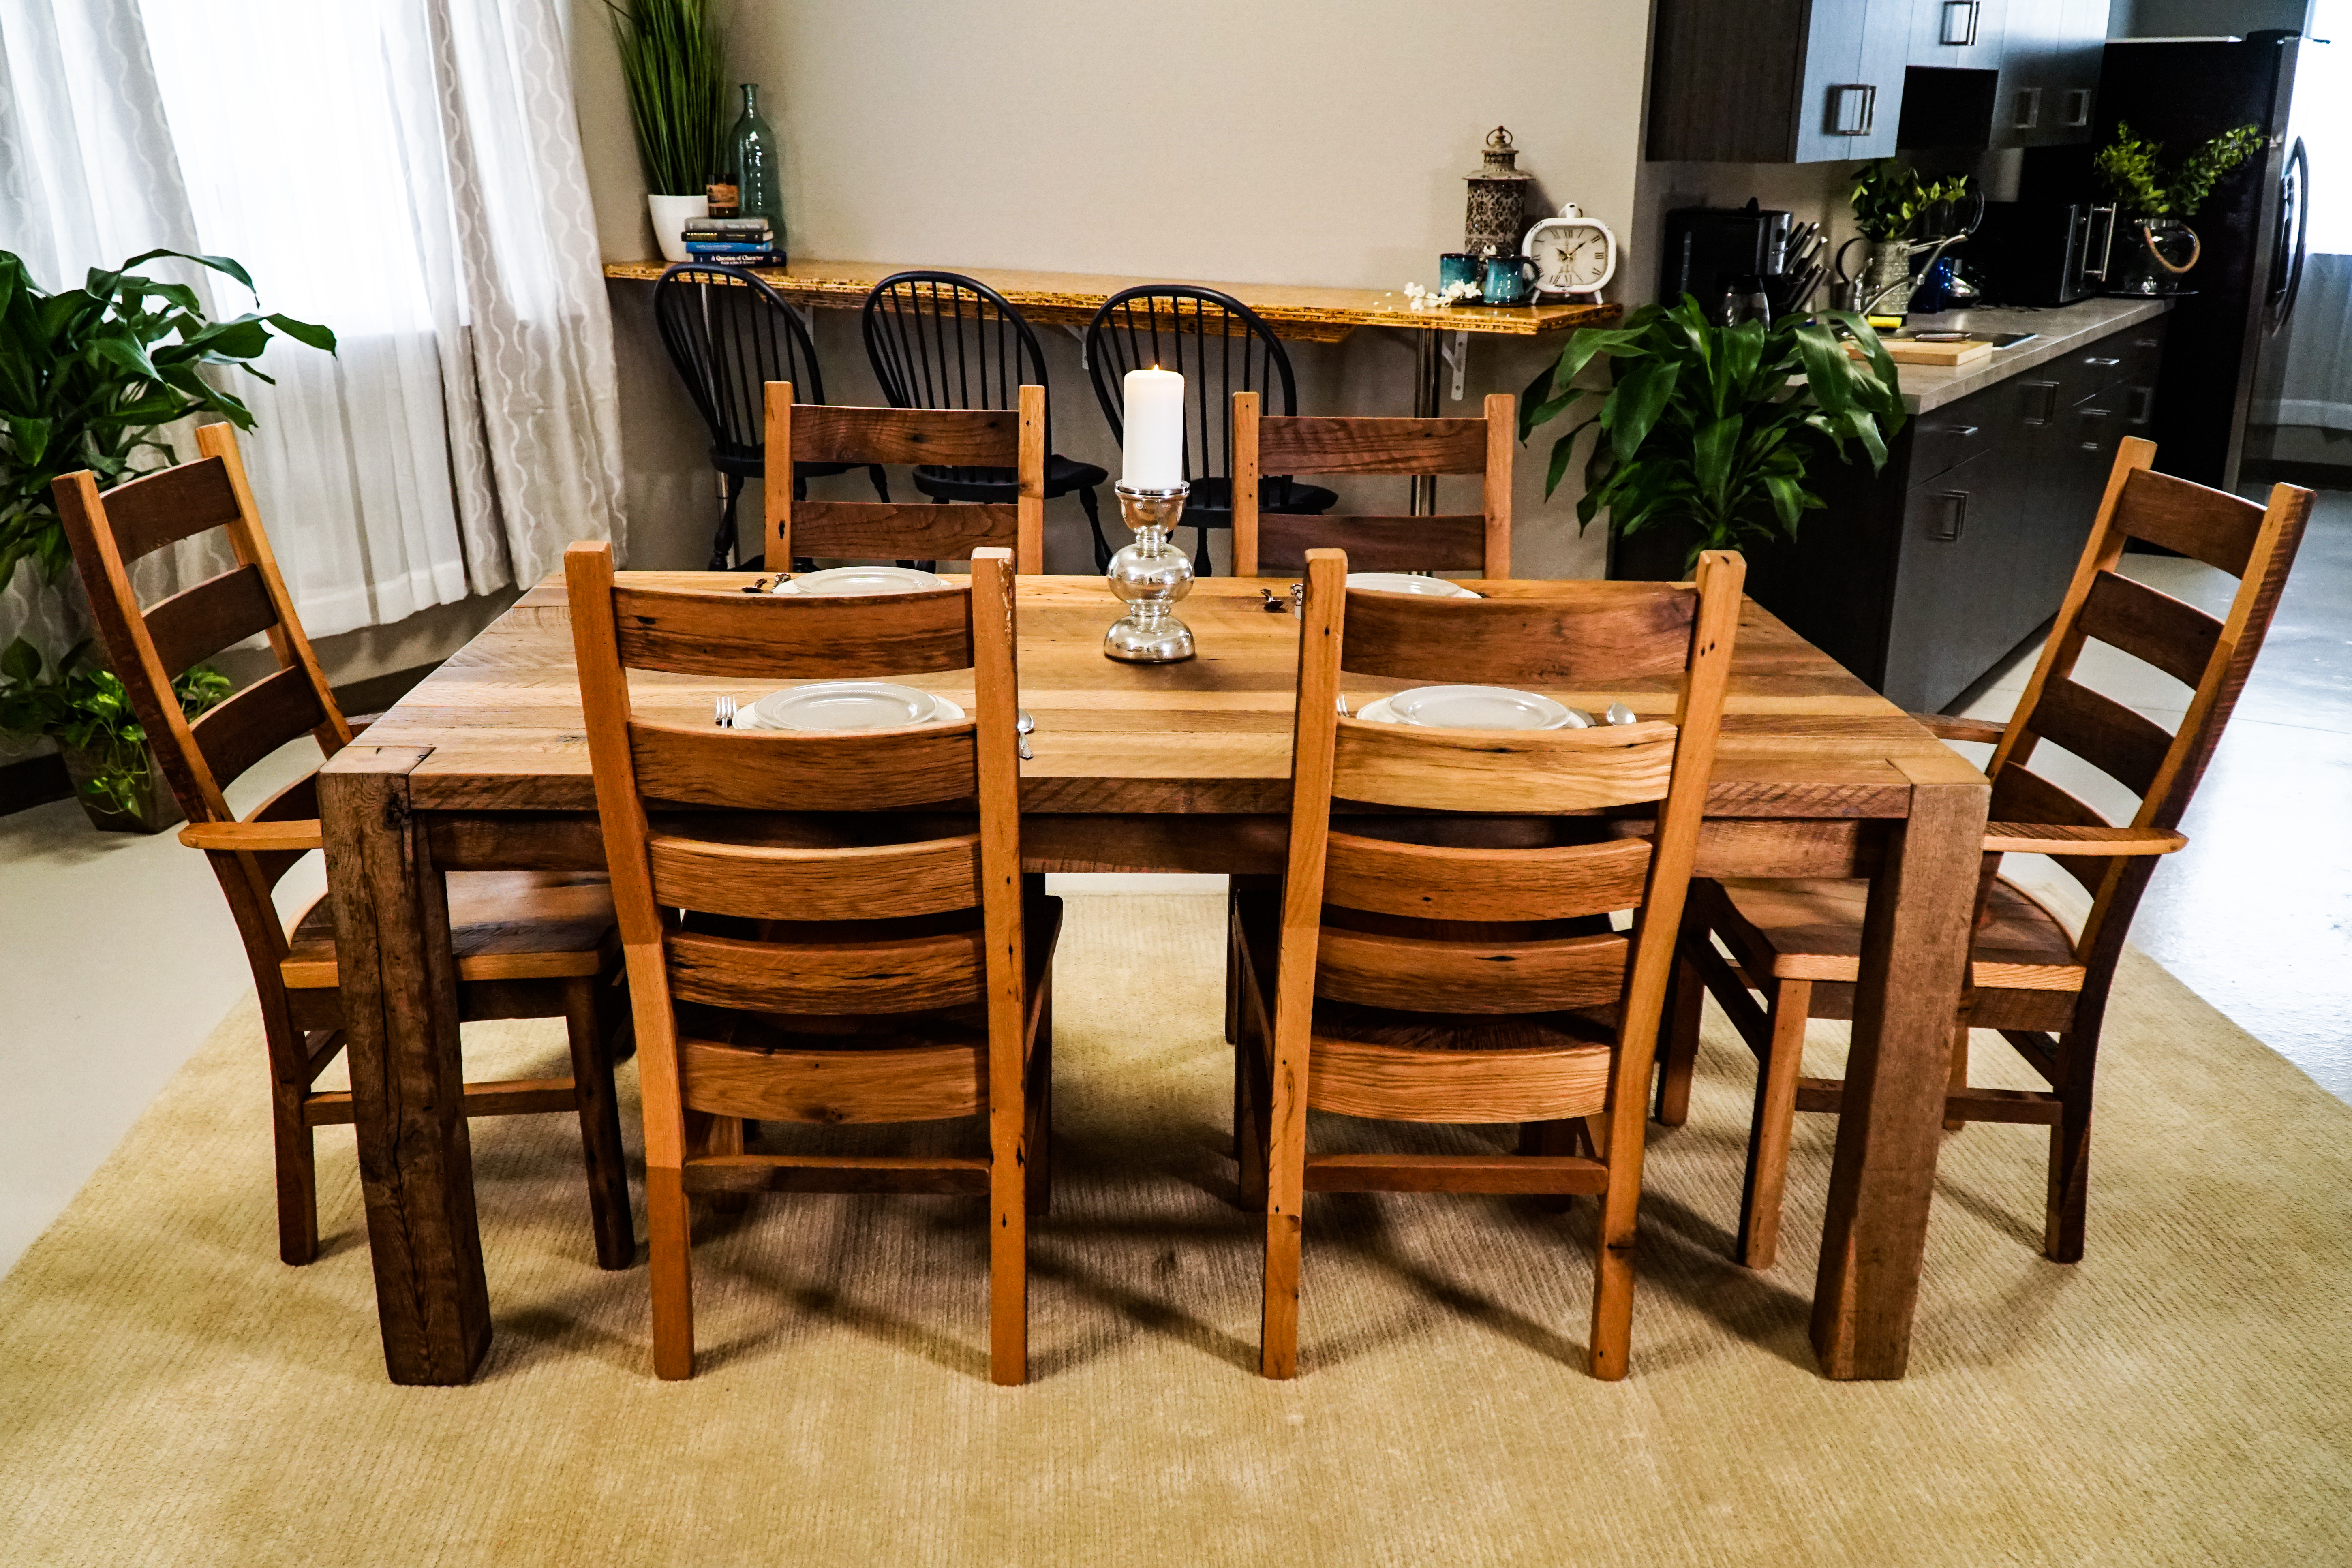 https://www.dutchcrafters.com/Amish-Reclaimed-Barn-Wood-Dining-Ridge-Table/p/54867